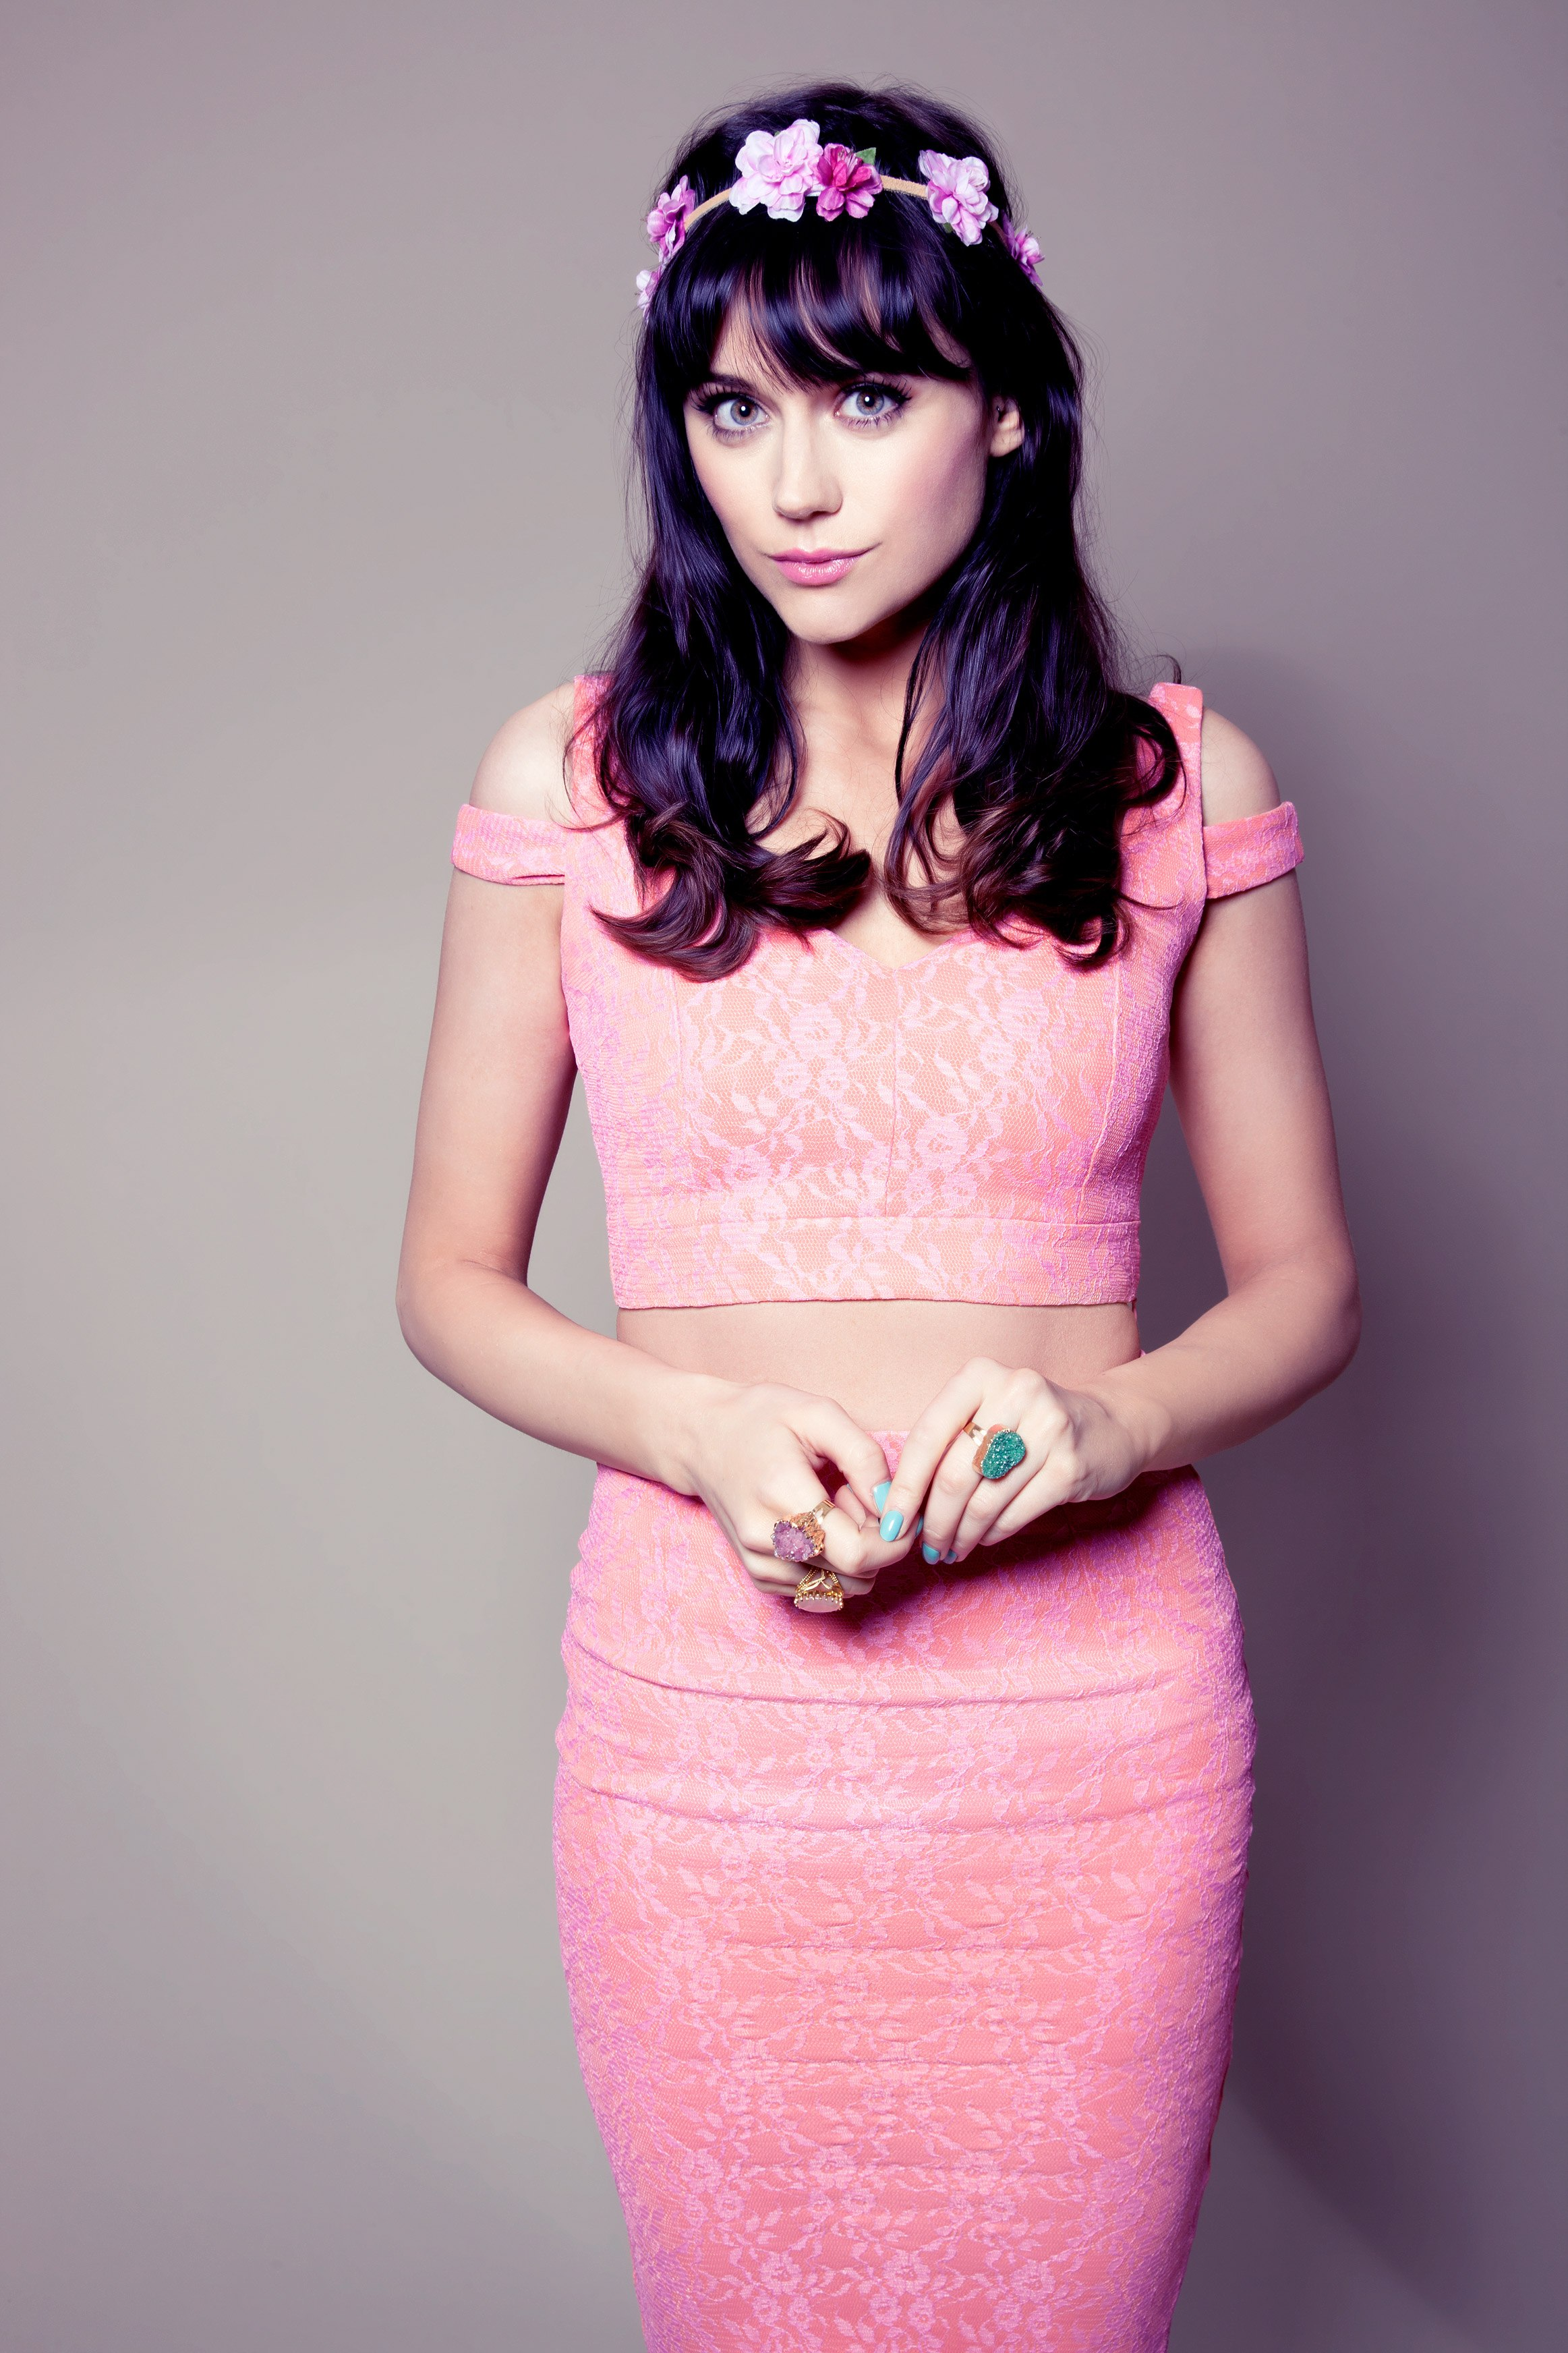 lilah-parsons-milk-management-pastel-ruth-rose-celebrity-mtv-6.jpg